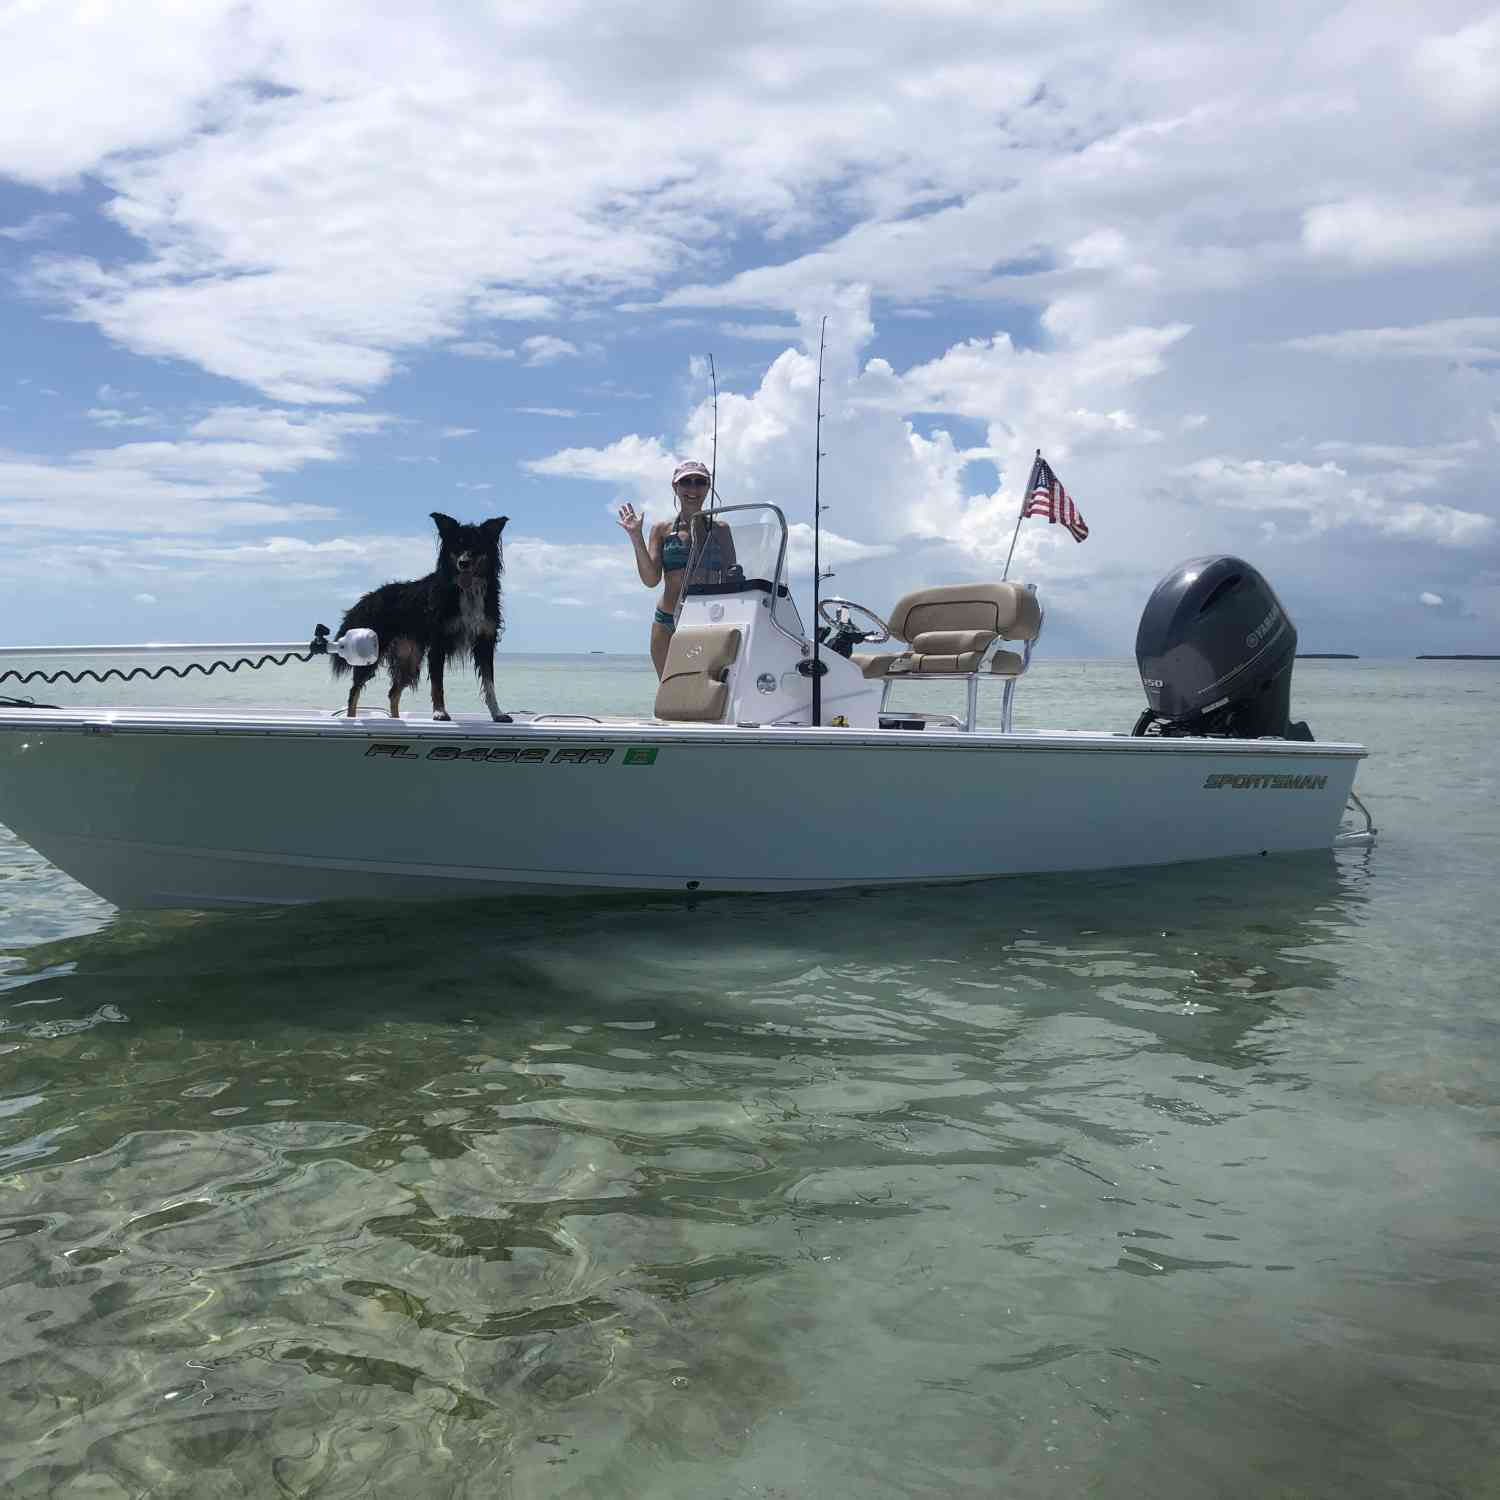 Title: Fun times in Islamorada - On board their Sportsman Masters 207 Bay Boat - Location: Islamorada, Fl. Participating in the Photo Contest #SportsmanSeptember2019